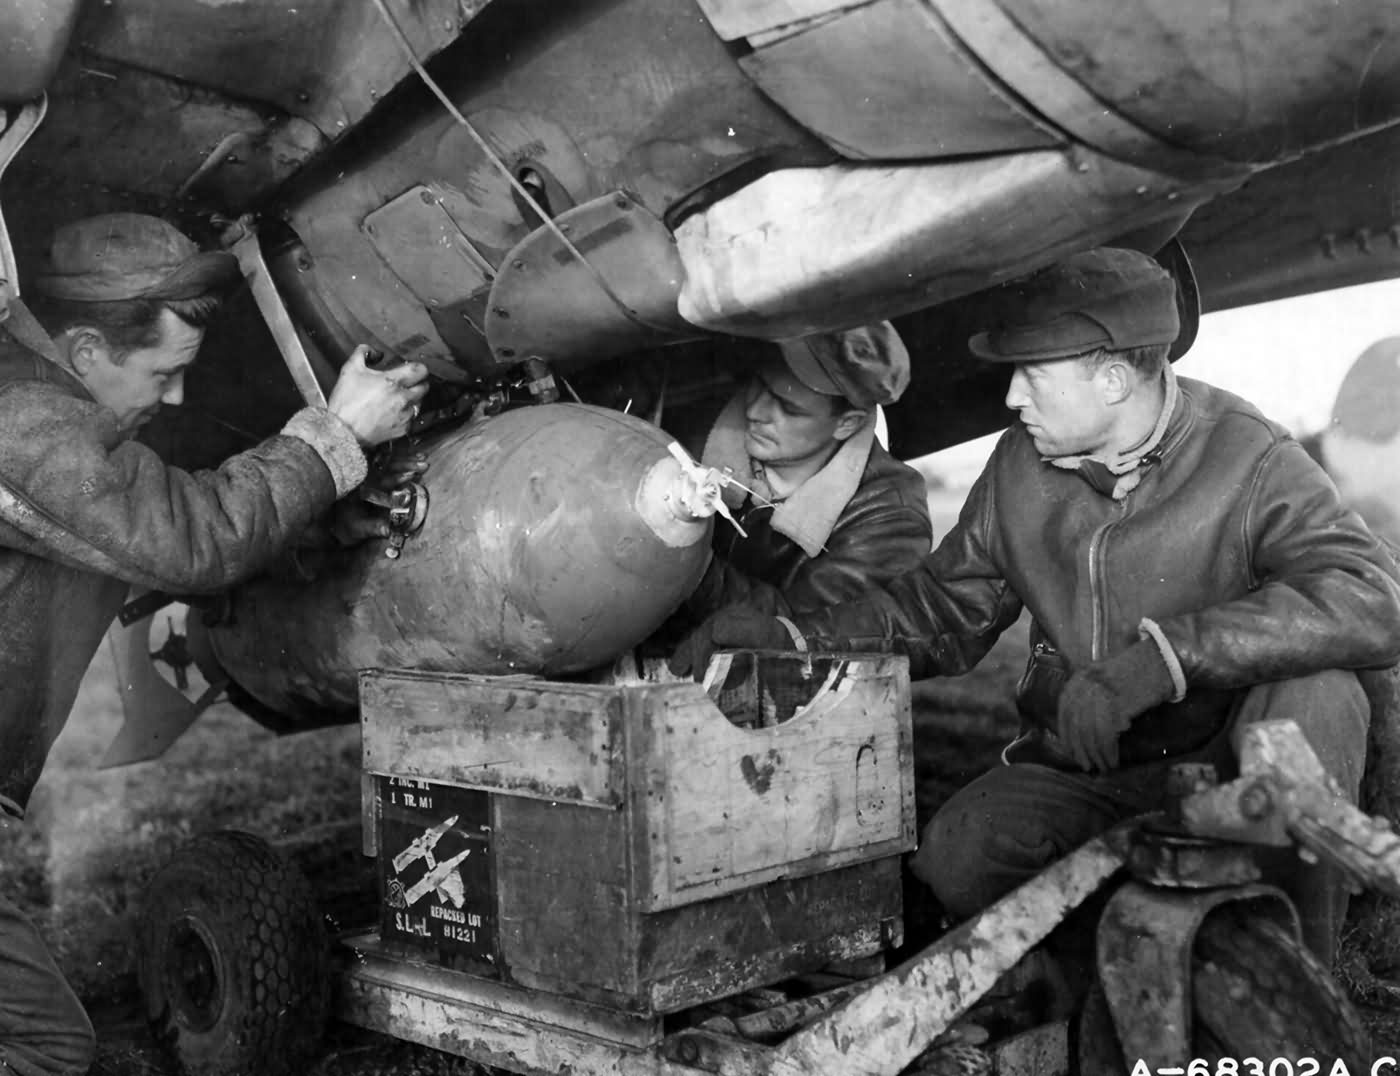 Ground_Crew_Men_Loading_A_500lb_Bomb_On_